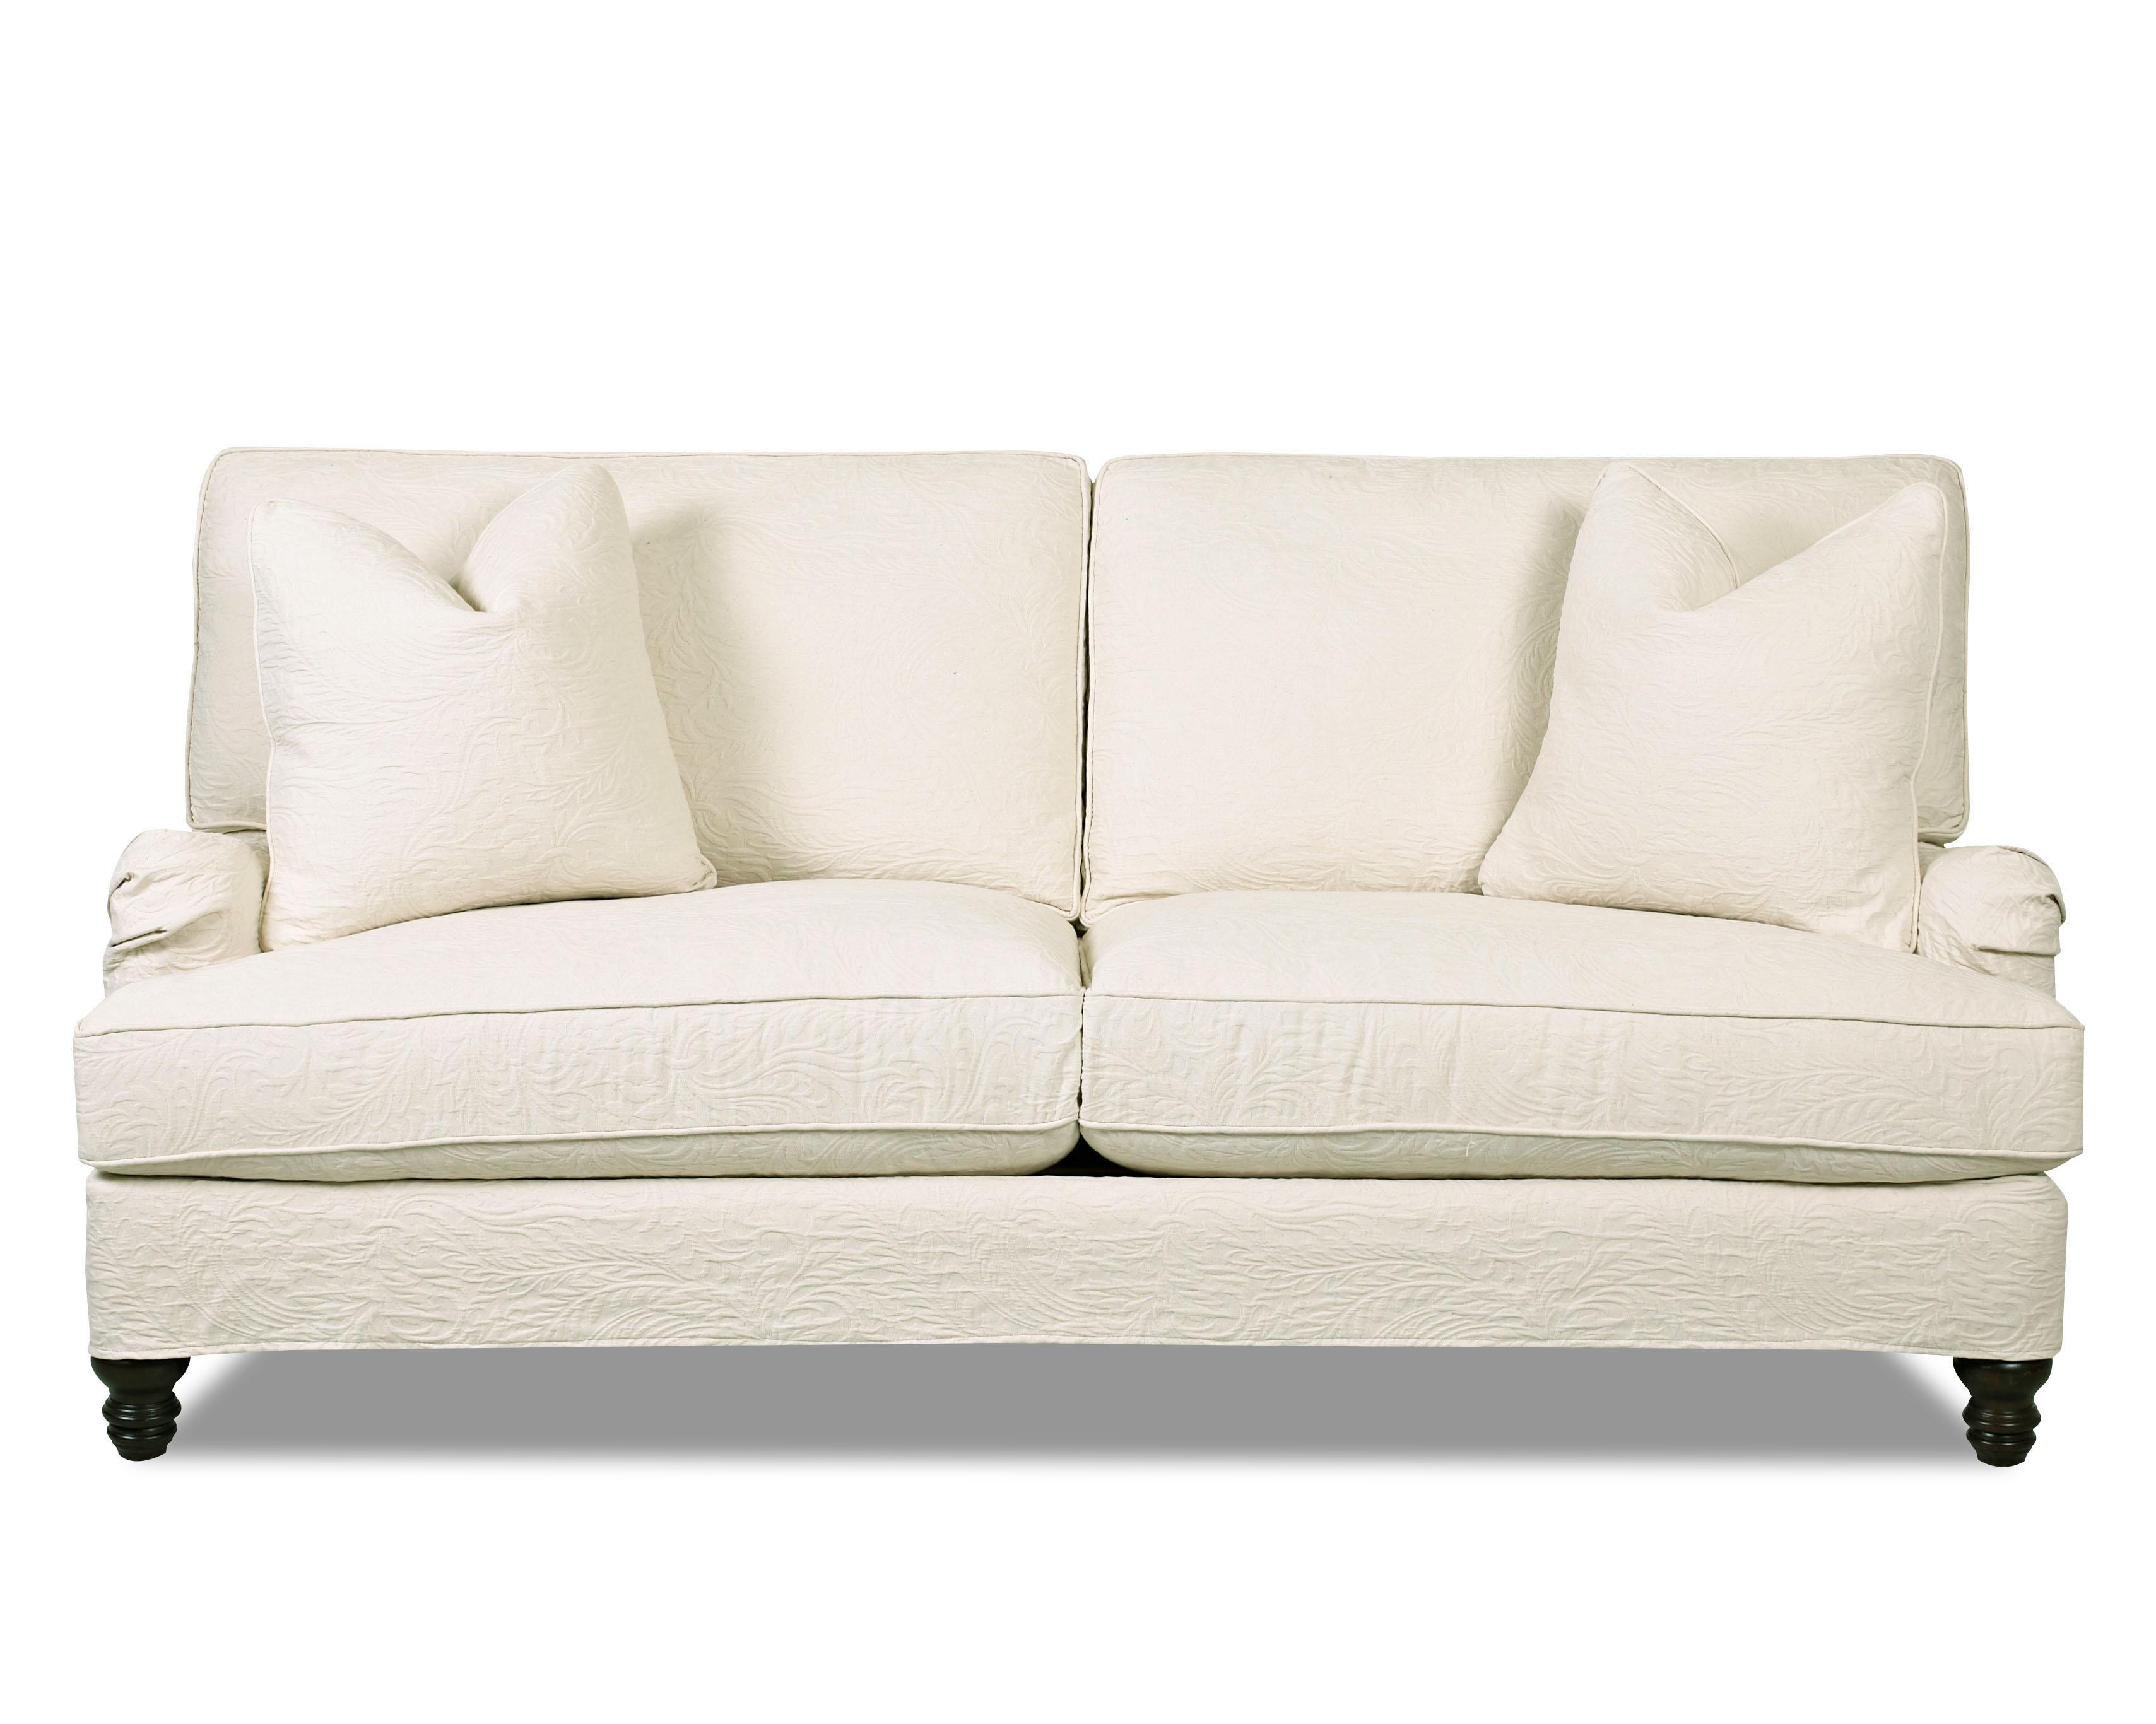 western style sofa covers ashley furniture durablend reclining traditional stationary with slip cover and charles of